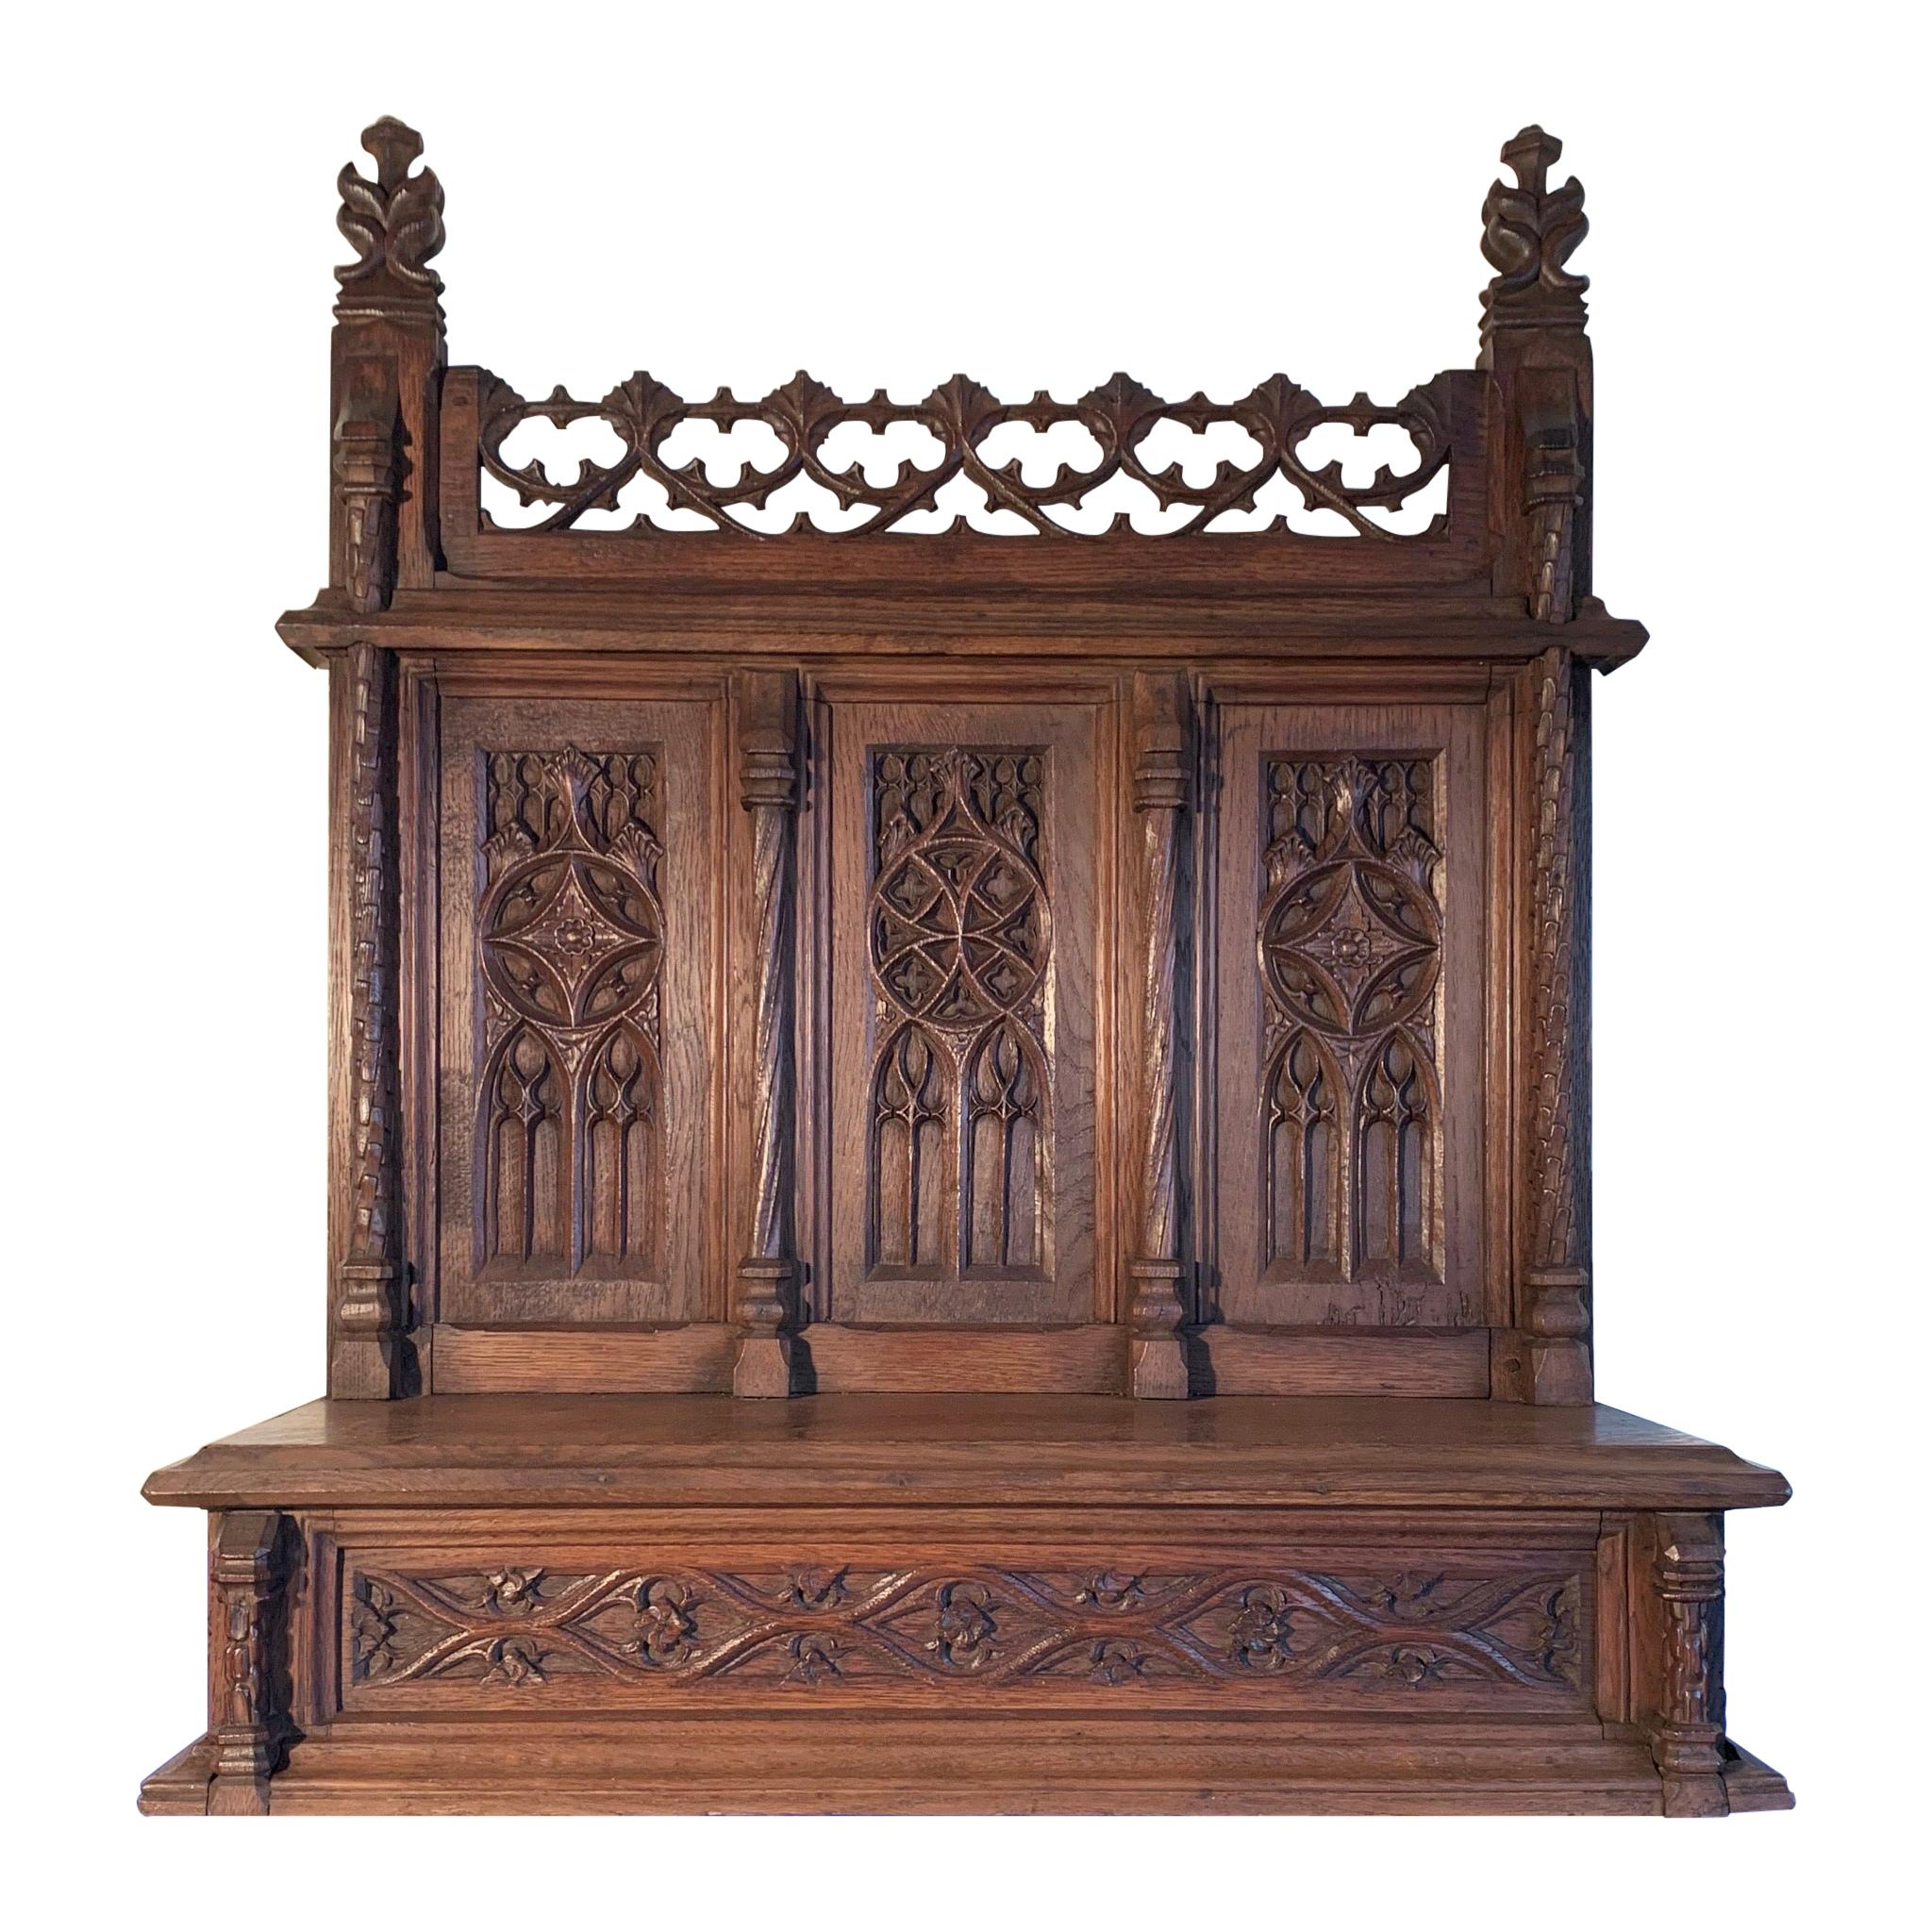 Early Antique Gothic Revival Church Altar / Shelf for Wall Mounting / Supporting